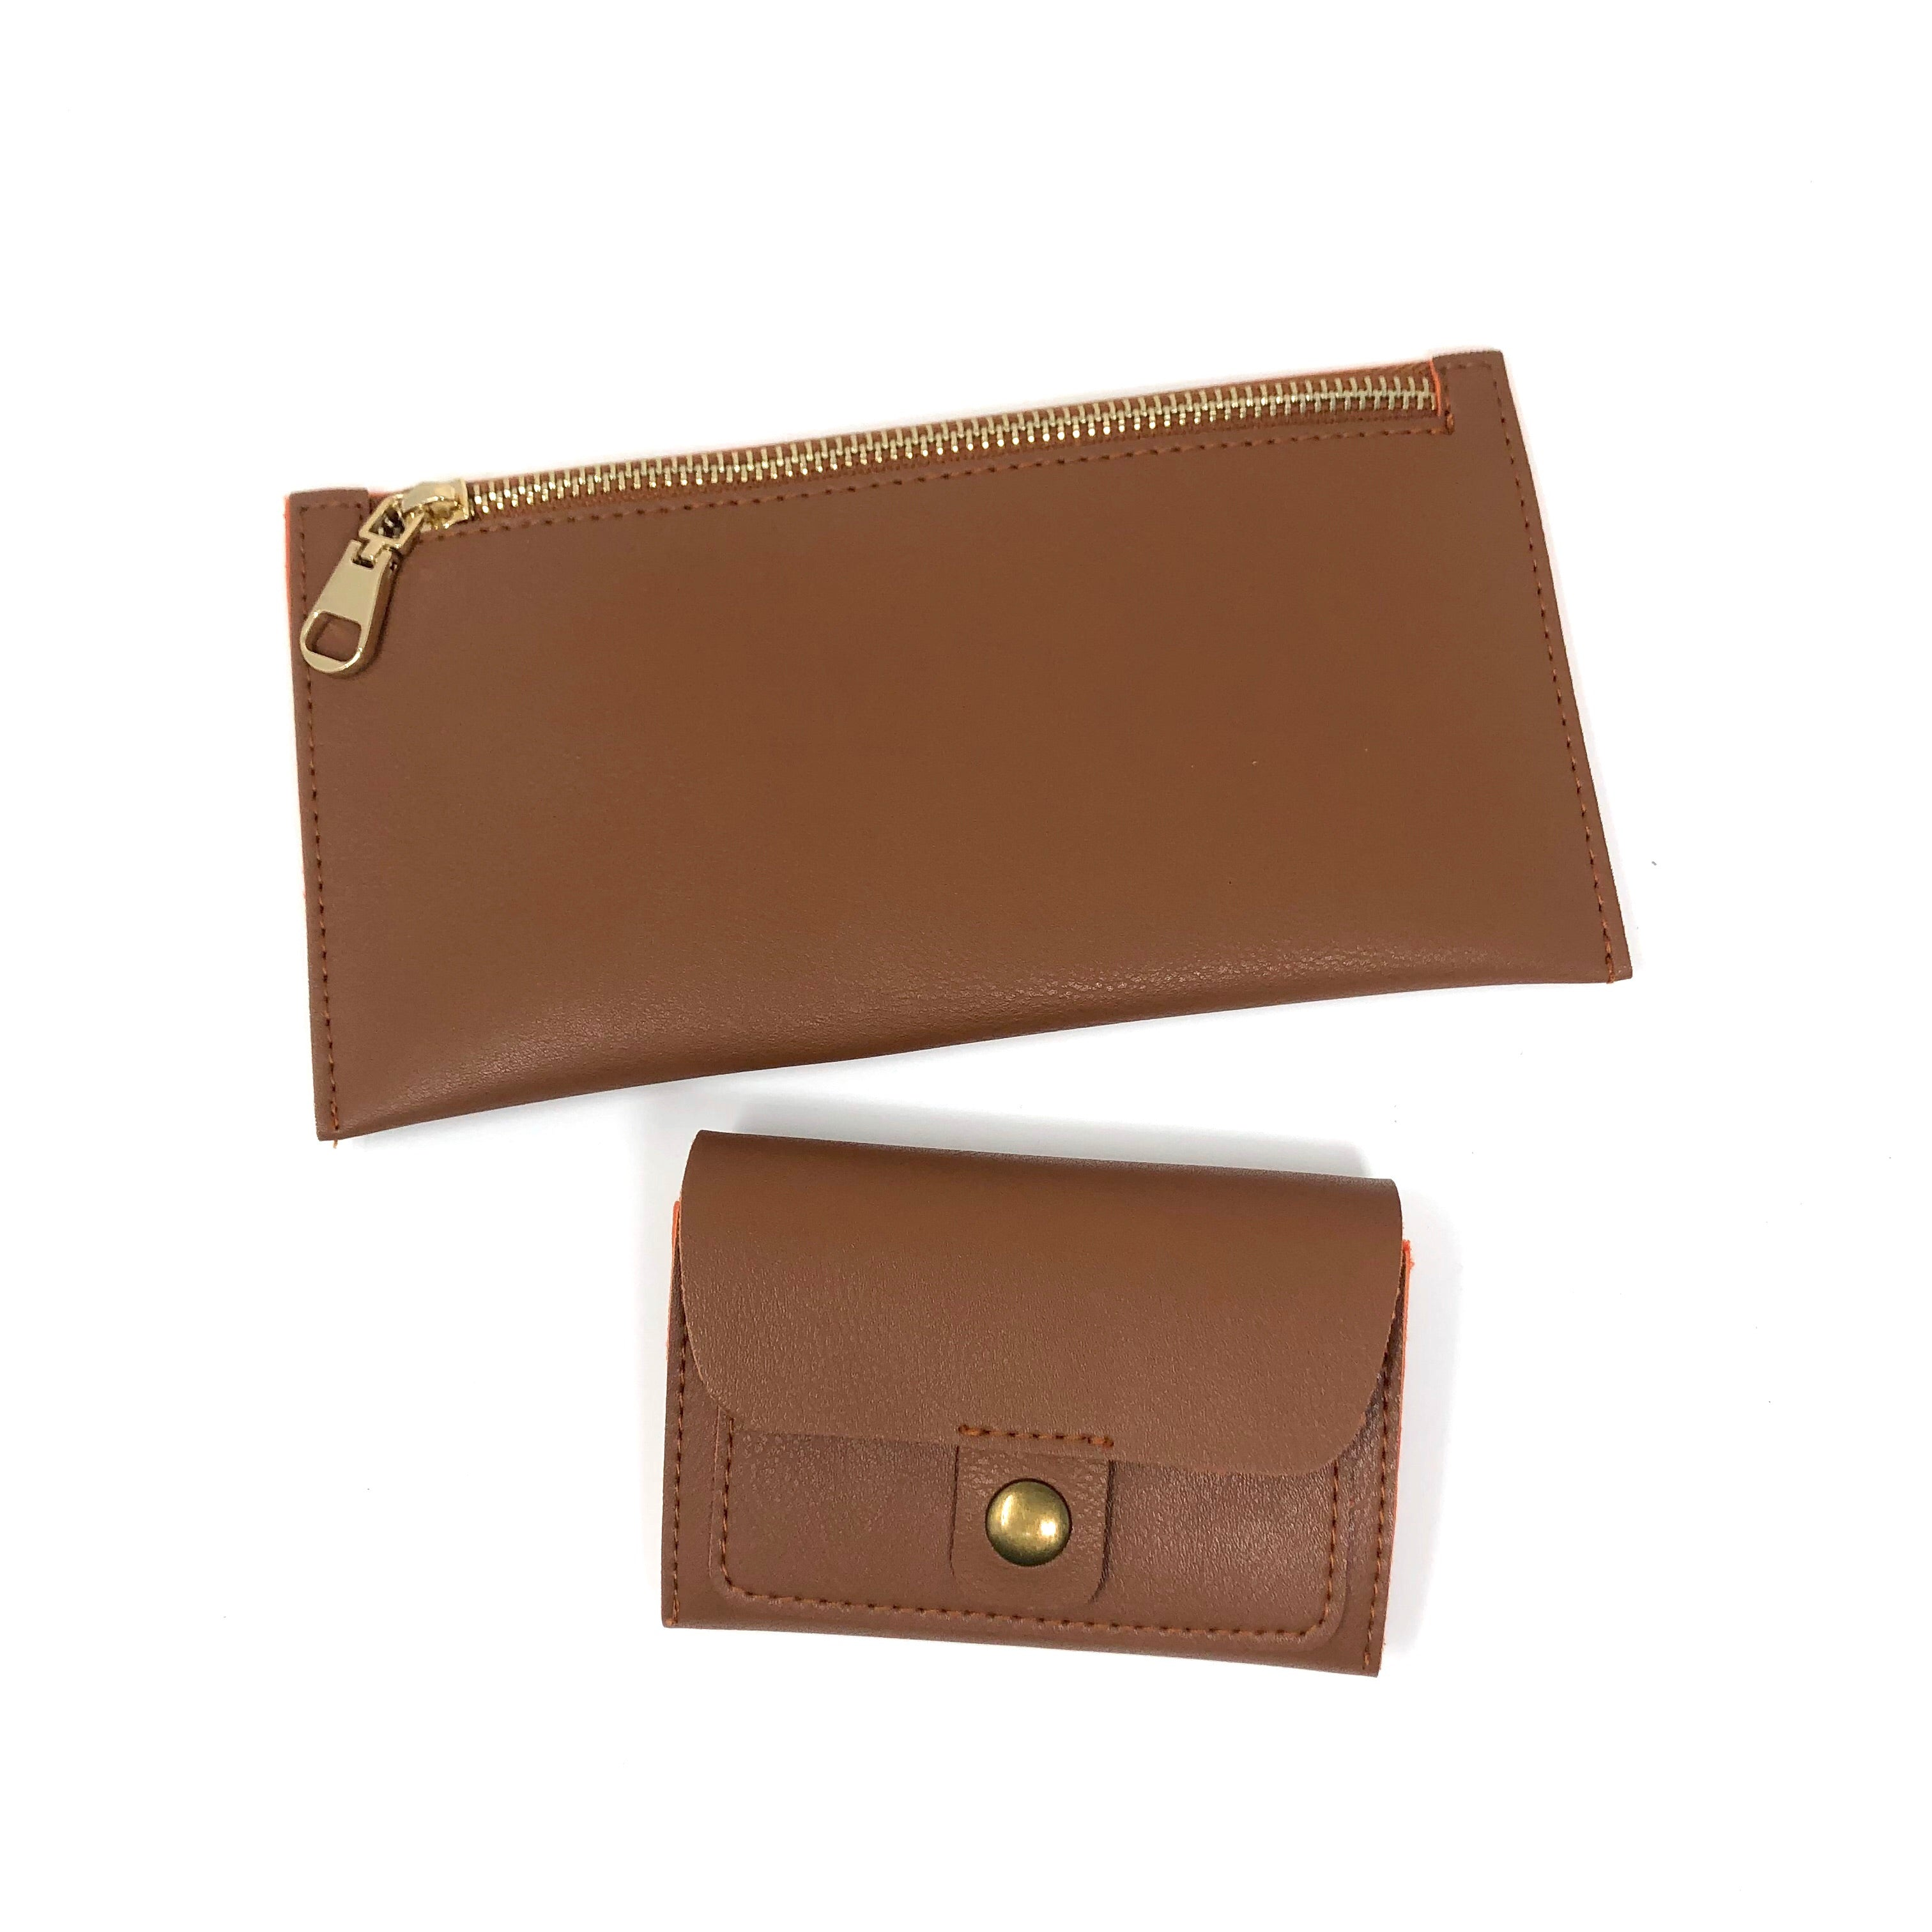 Cristine slim wallet & James card holder